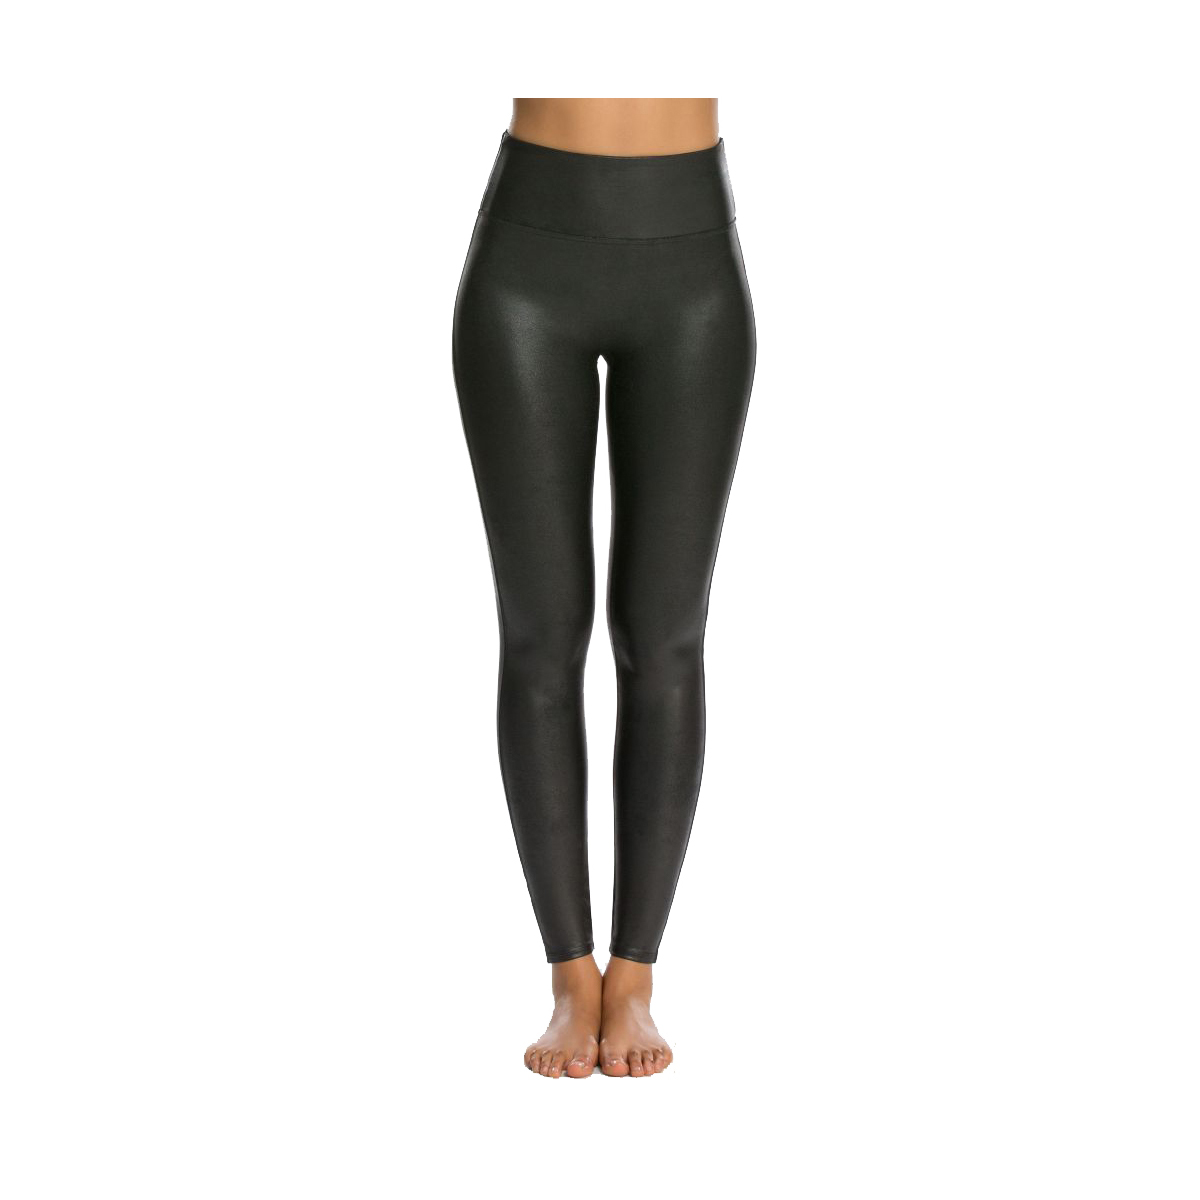 e2e21ff7db1ca9 11 Top-Rated Black Leggings That Are So Comfortable, You'll Never ...